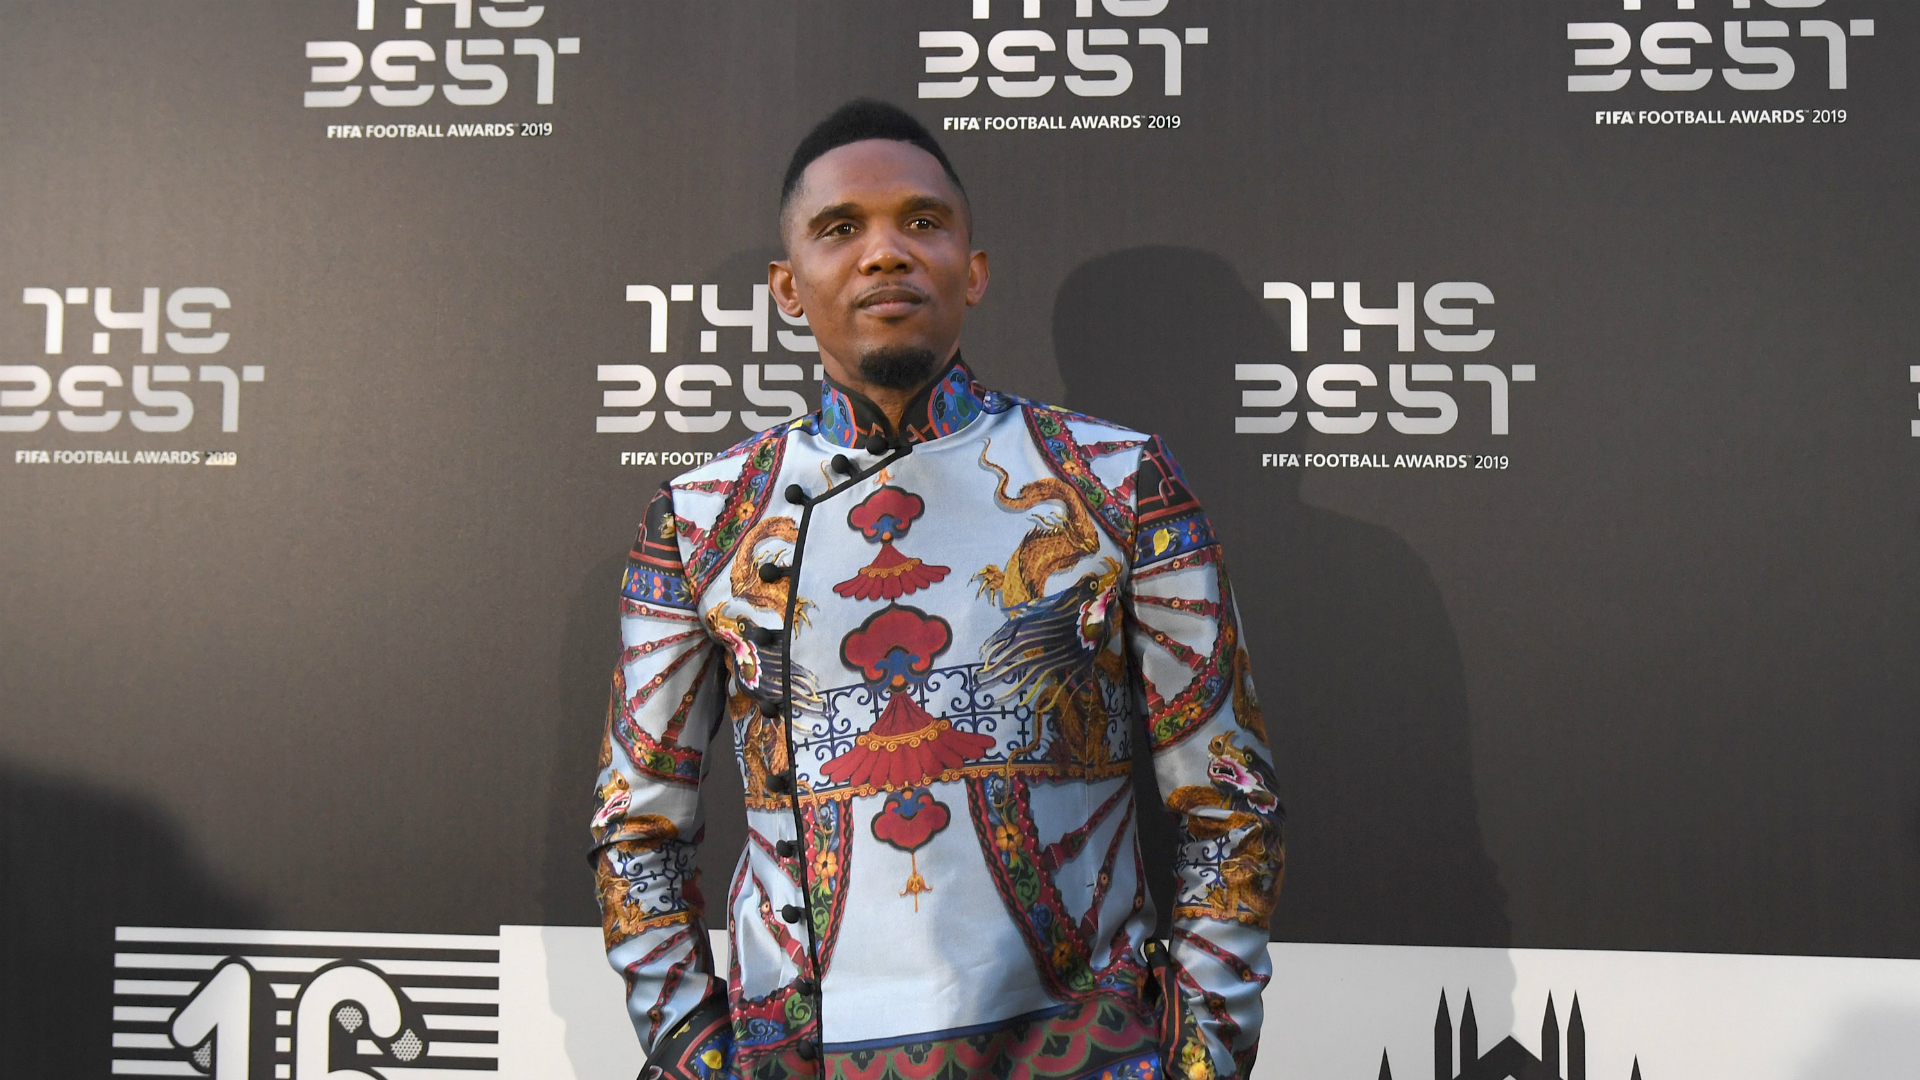 Cameroon could have won the Fifa World Cup - Eto'o